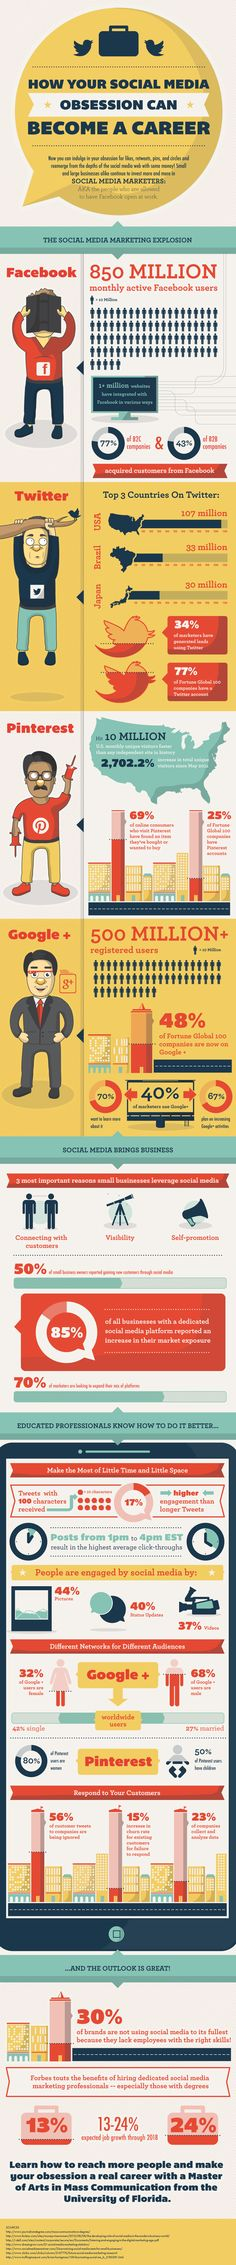 social media career infographic